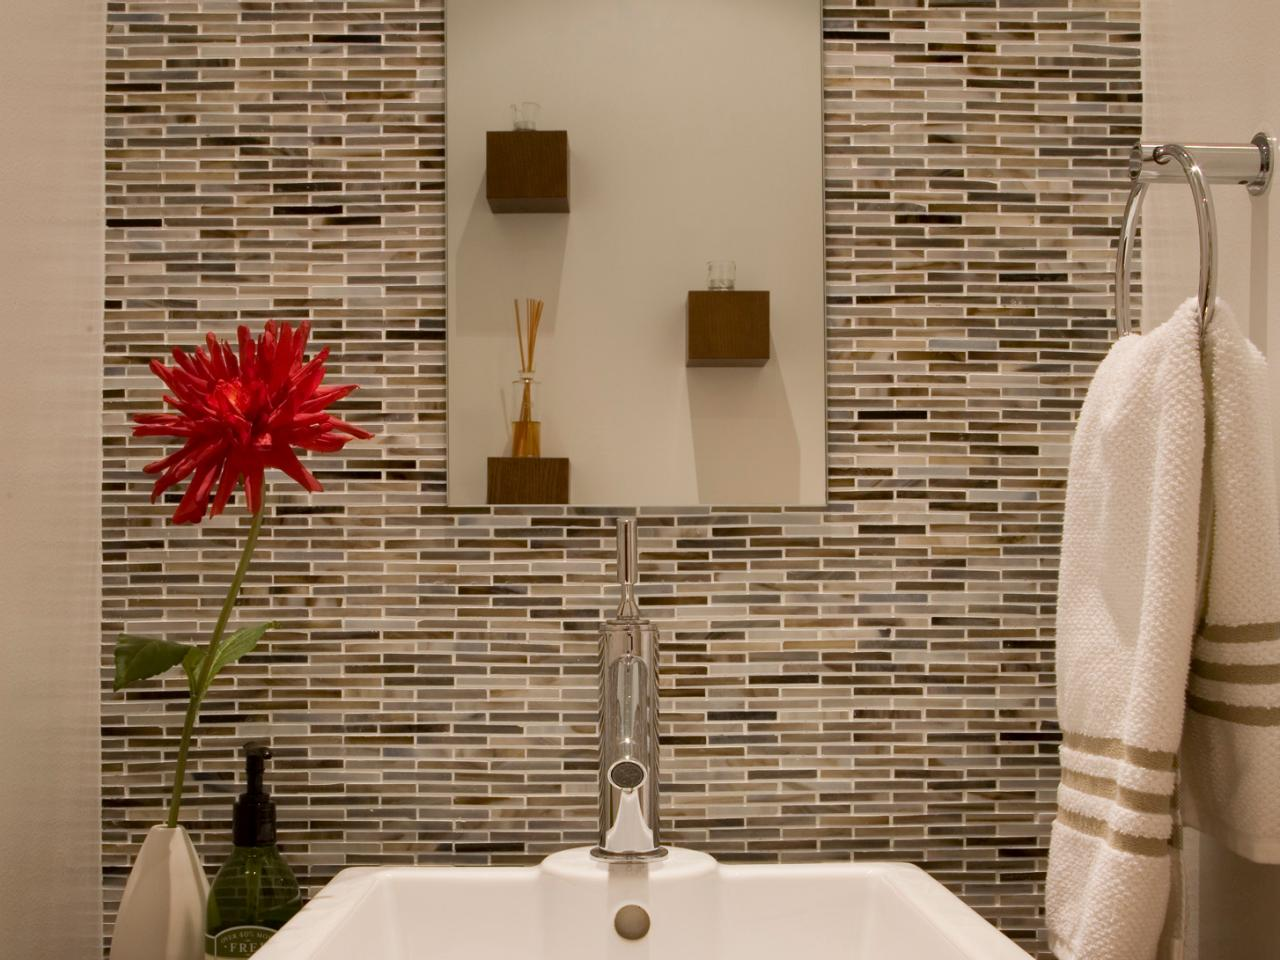 Bathroom designs pictures with tiles - Tags